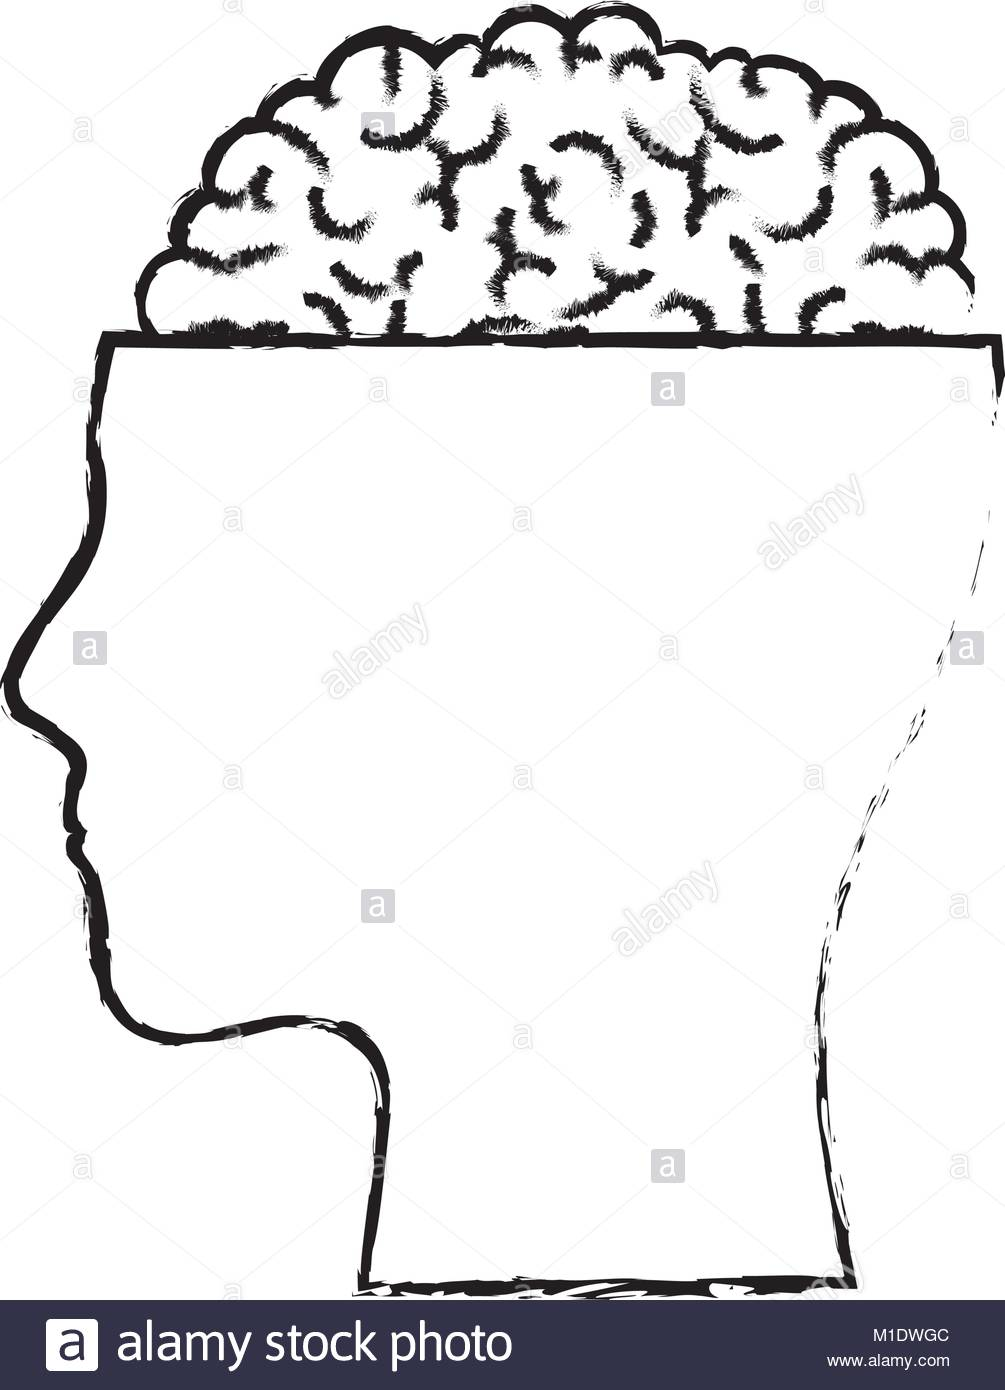 1005x1390 Human Face Silhouette With Brain Exposed In Black Blurred Contour